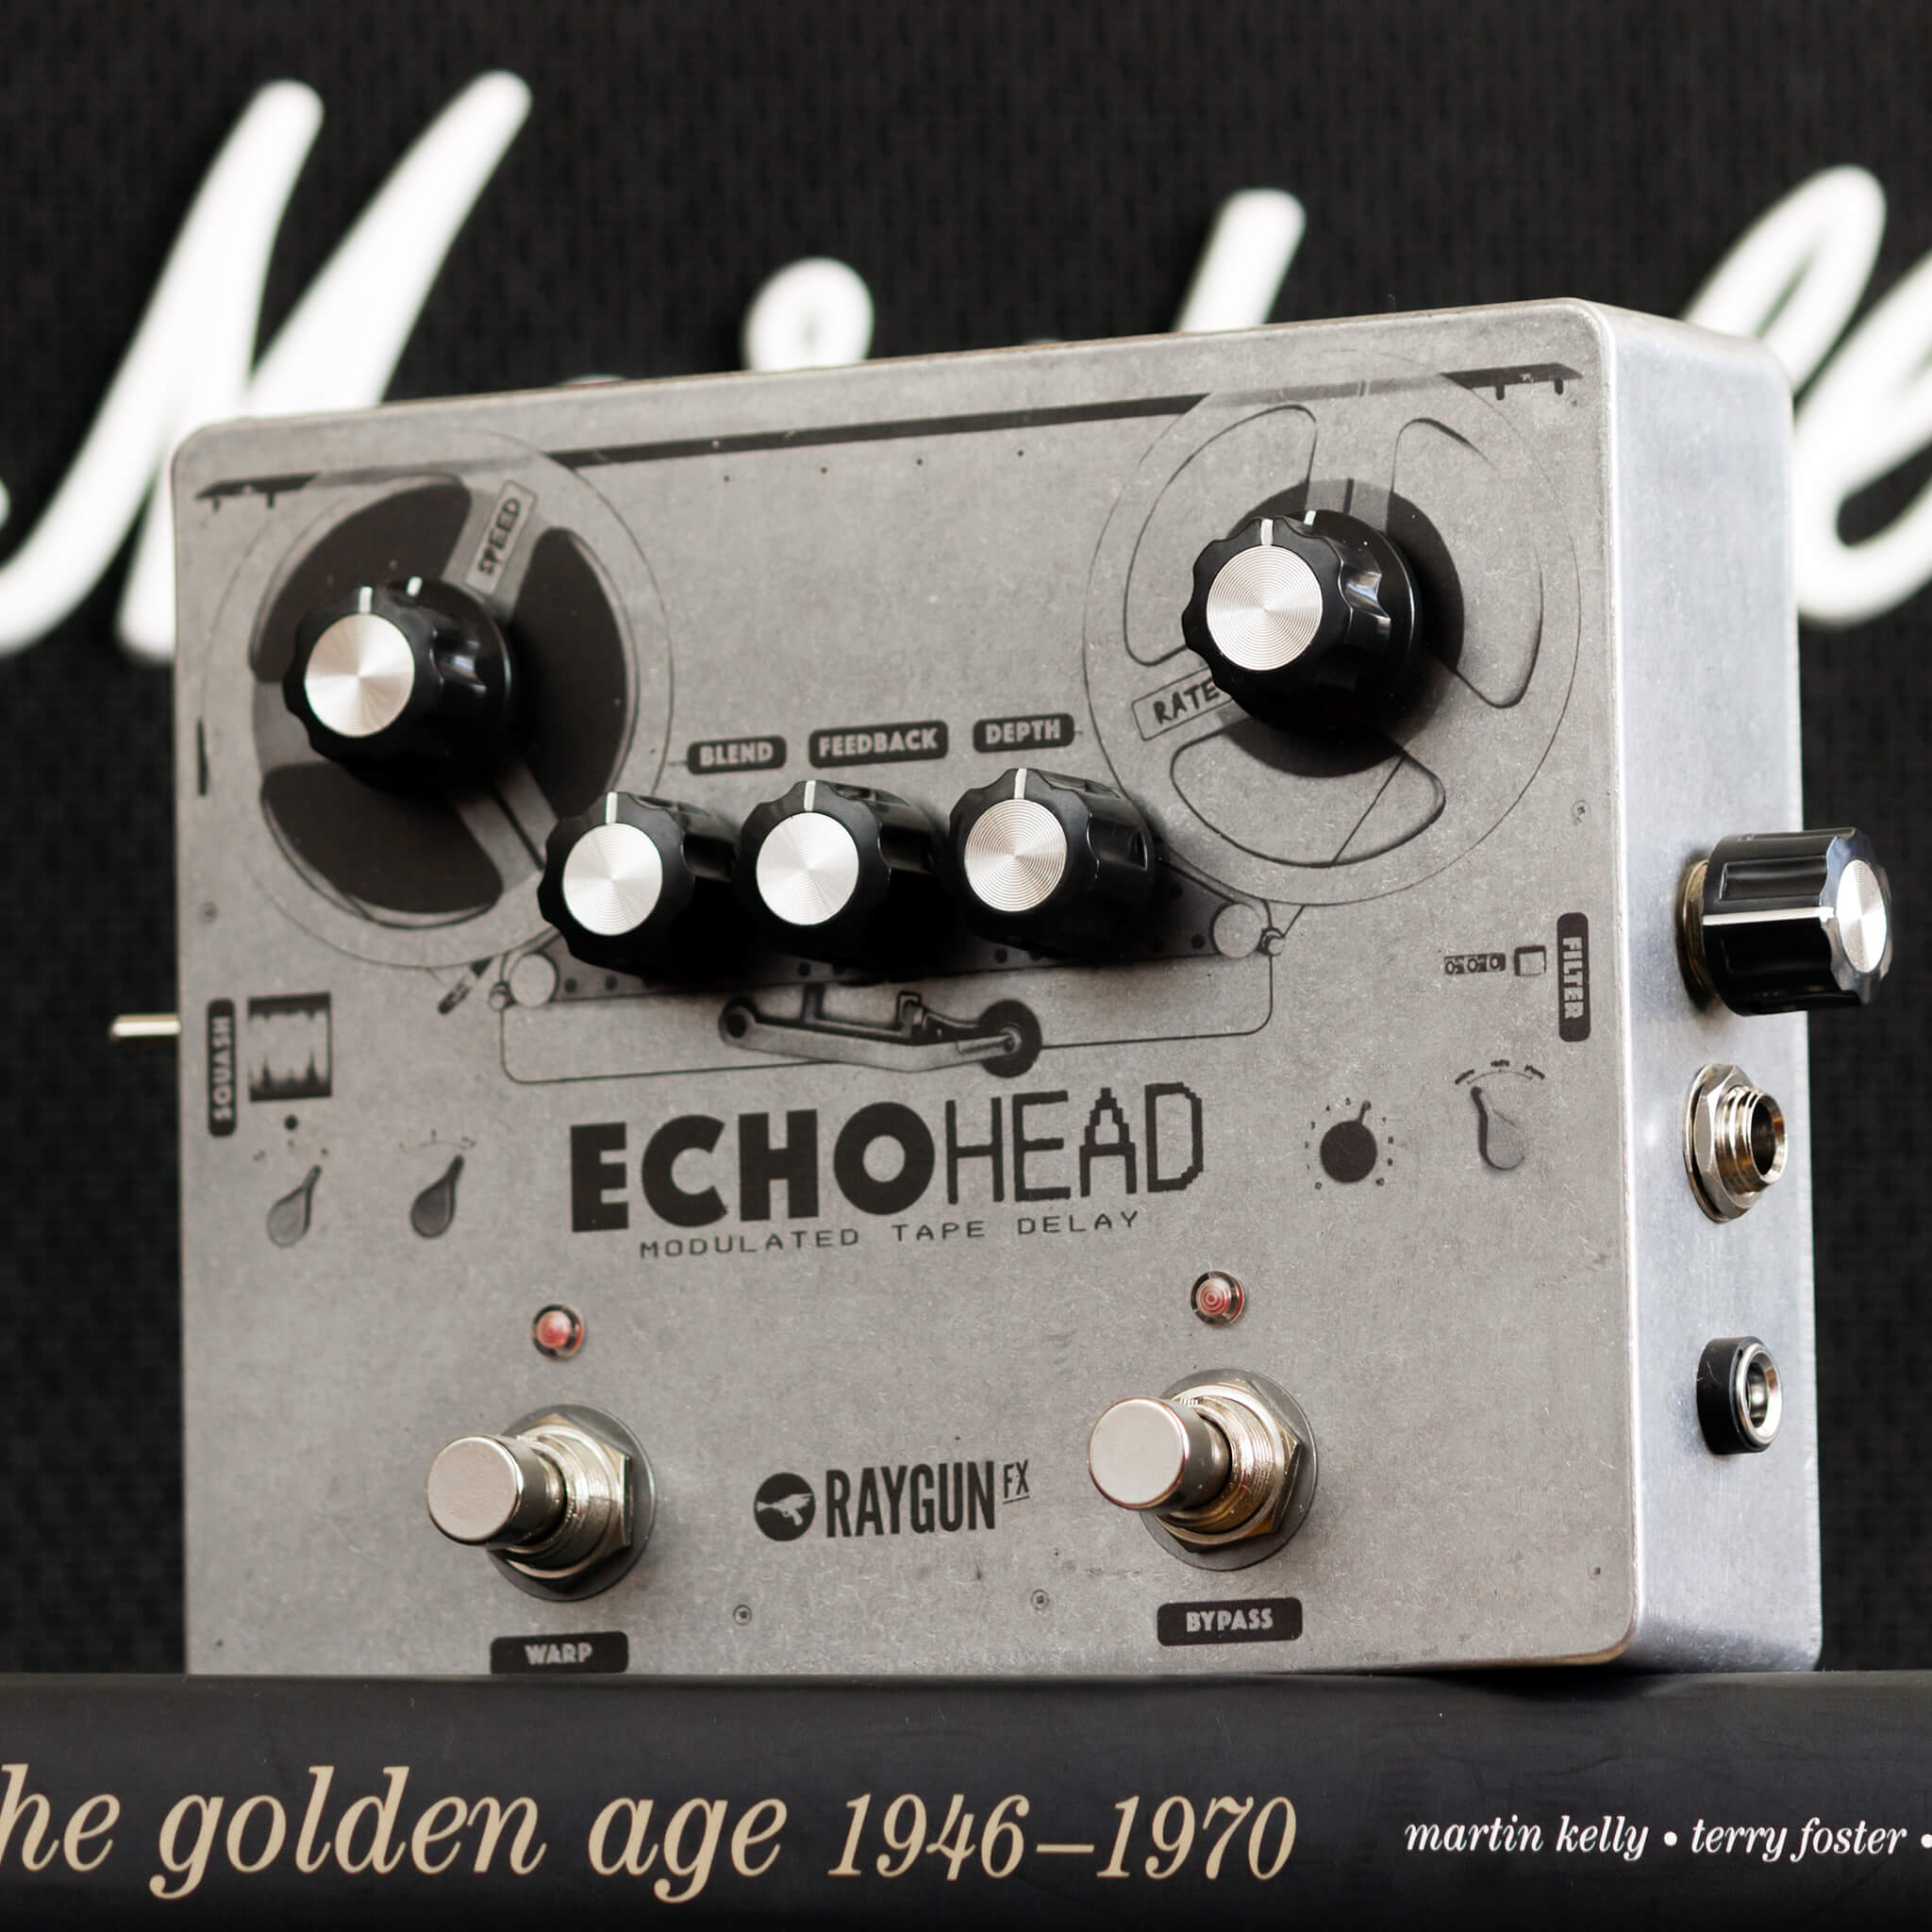 RAYGUN FX Echohead Analogue Delay Left Context - Boost Guitar Pedals